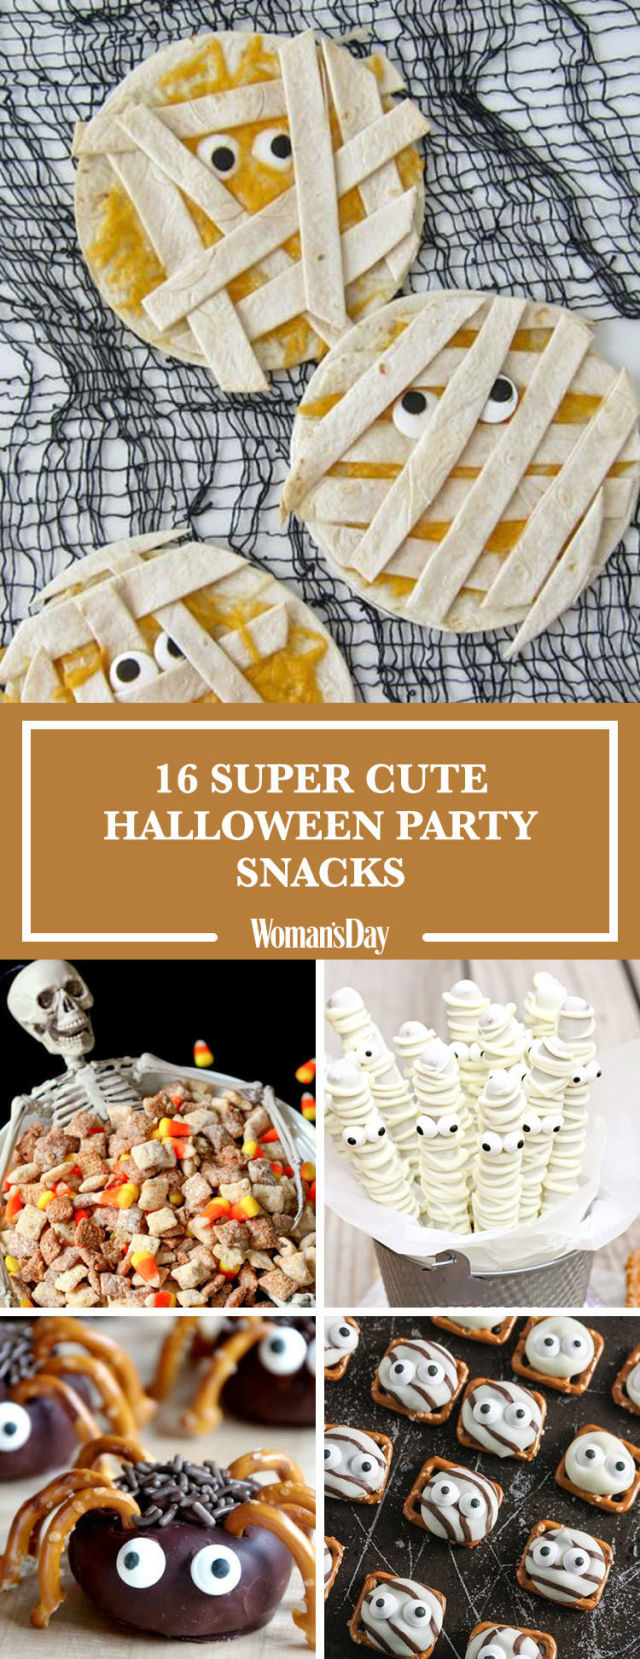 24 Easy Halloween Party Snacks — Ideas and Recipes for Halloween ...